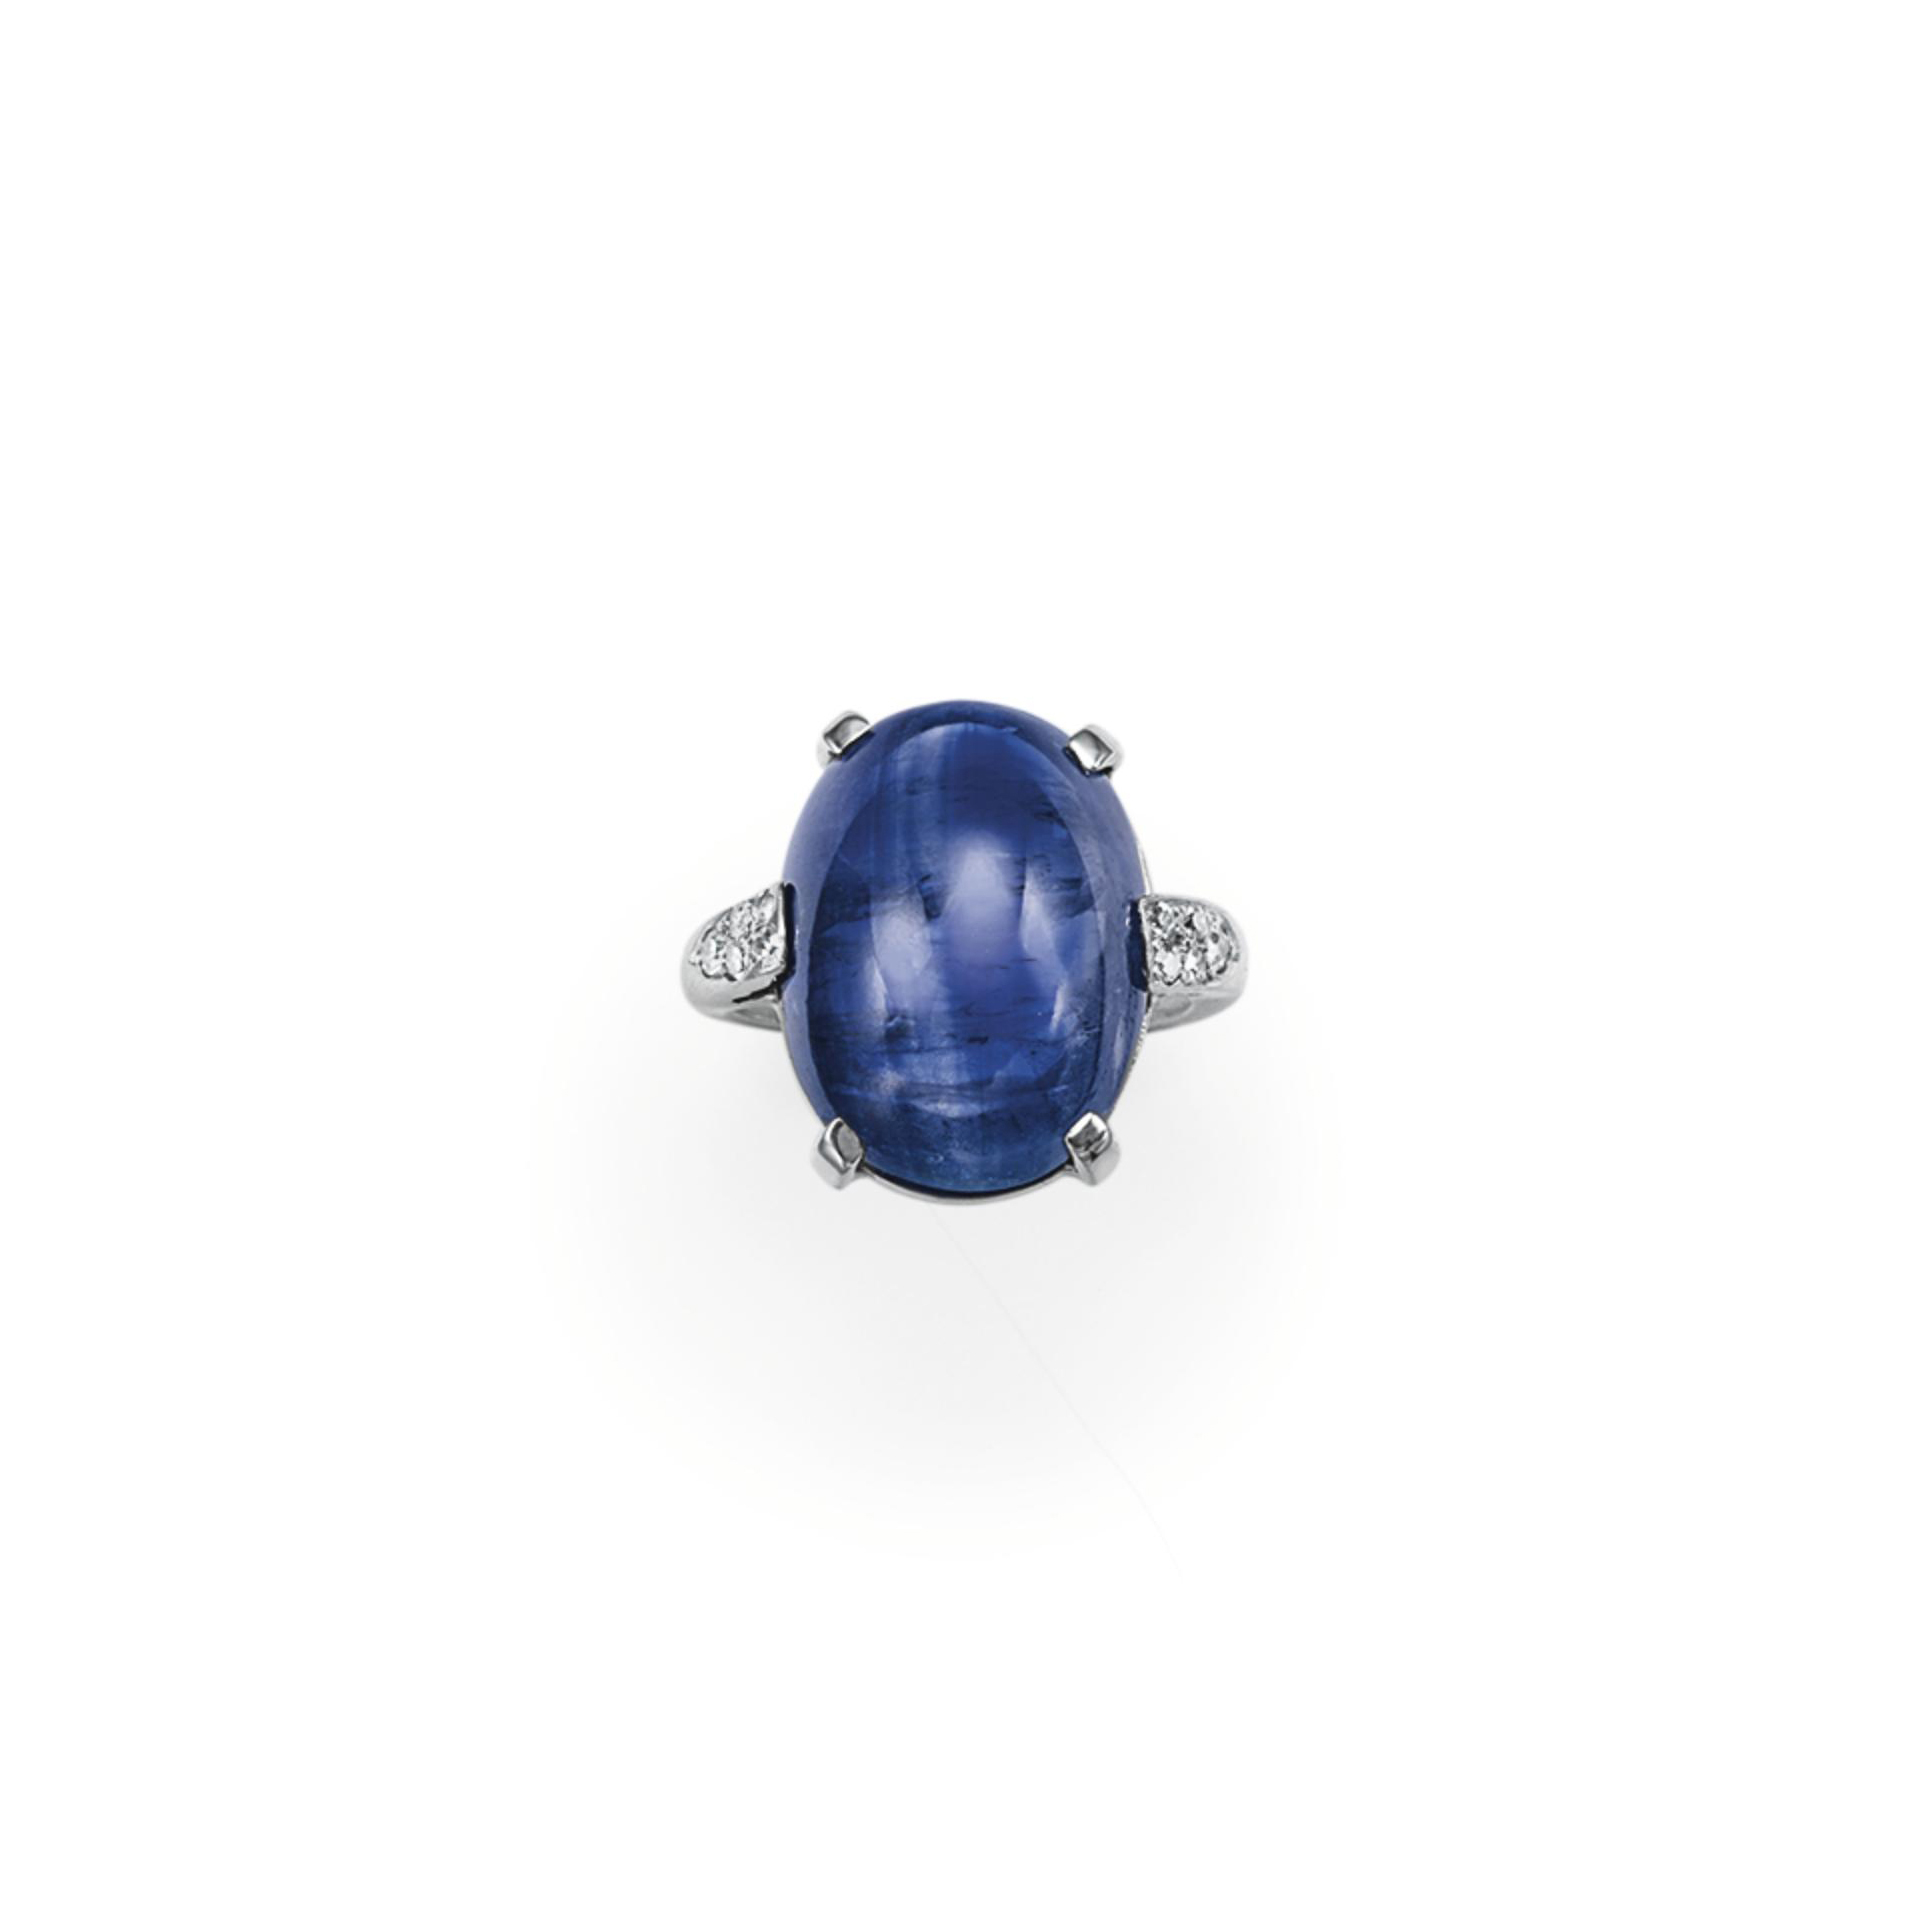 A SAPPHIRE AND DIAMOND RING, BY SEAMAN SCHEPPS